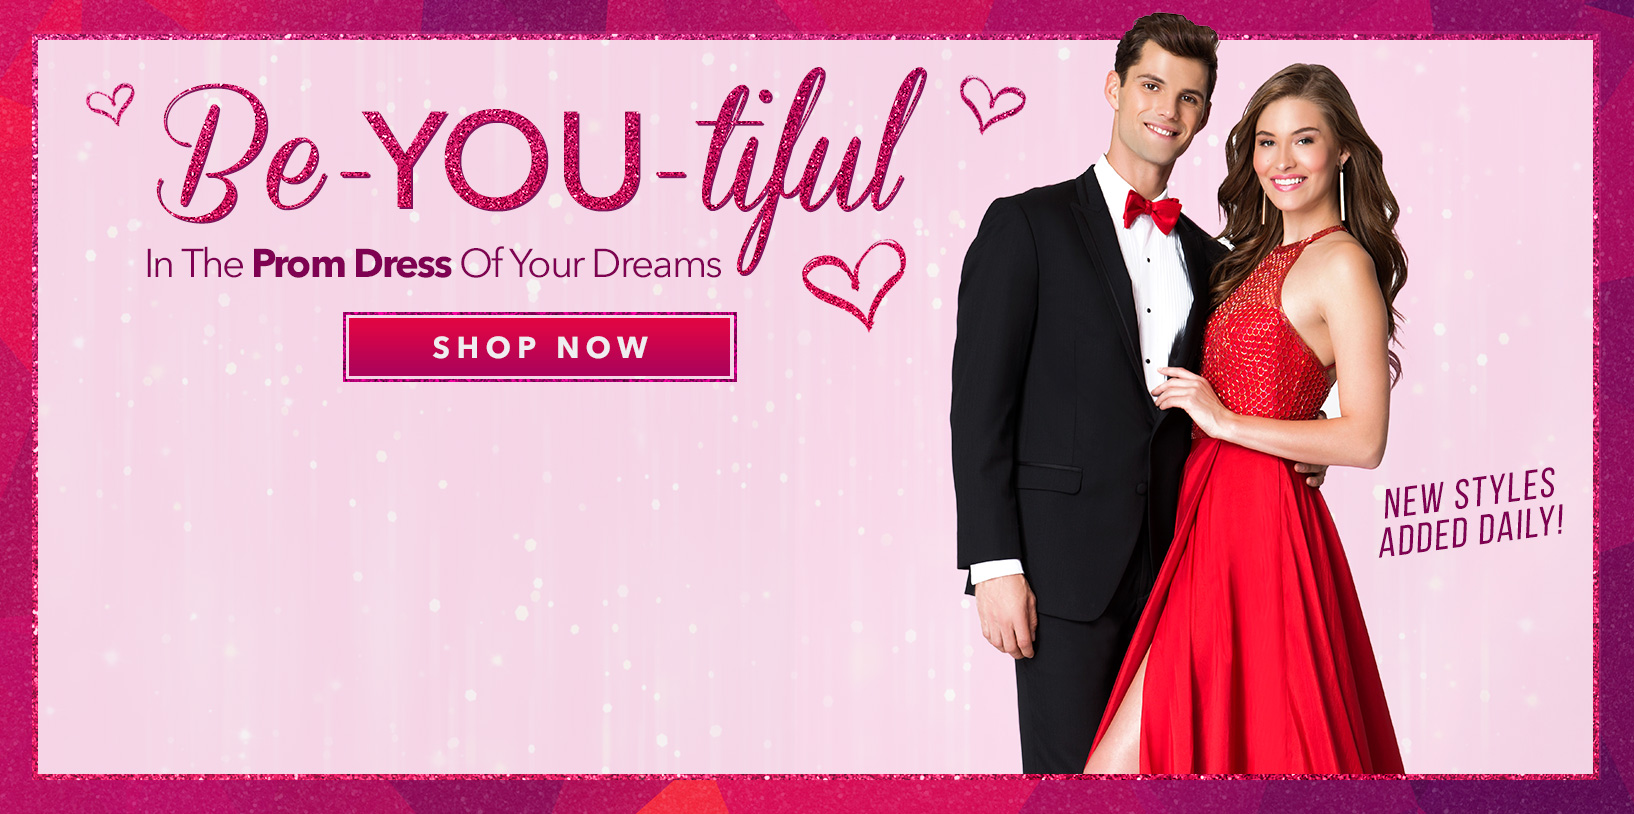 Be-YOU-tiful in the Prom Dress of your dreams